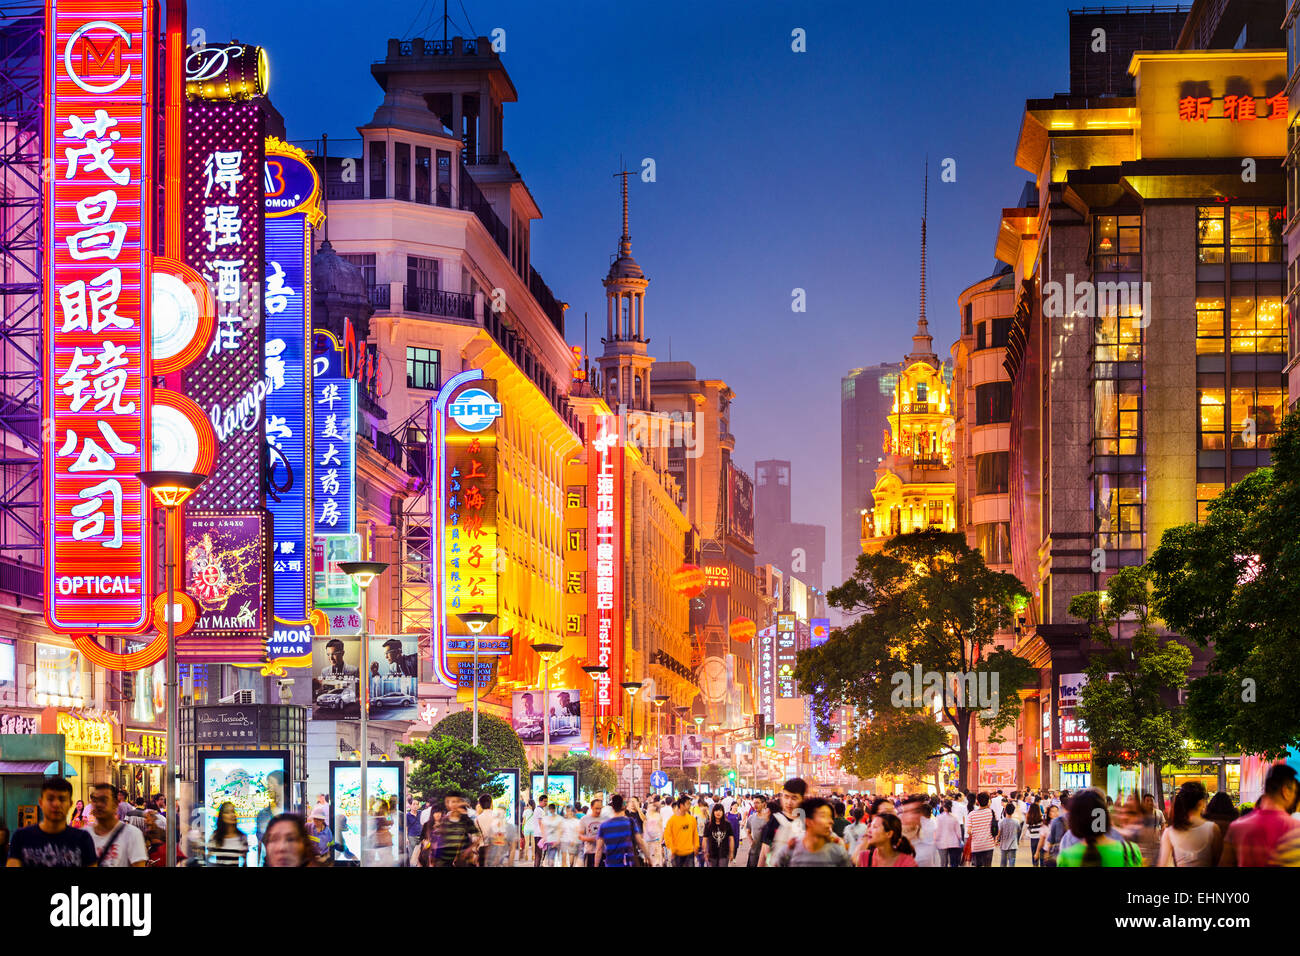 Neon signs lit on Nanjing Road in Shanghai, China. - Stock Image